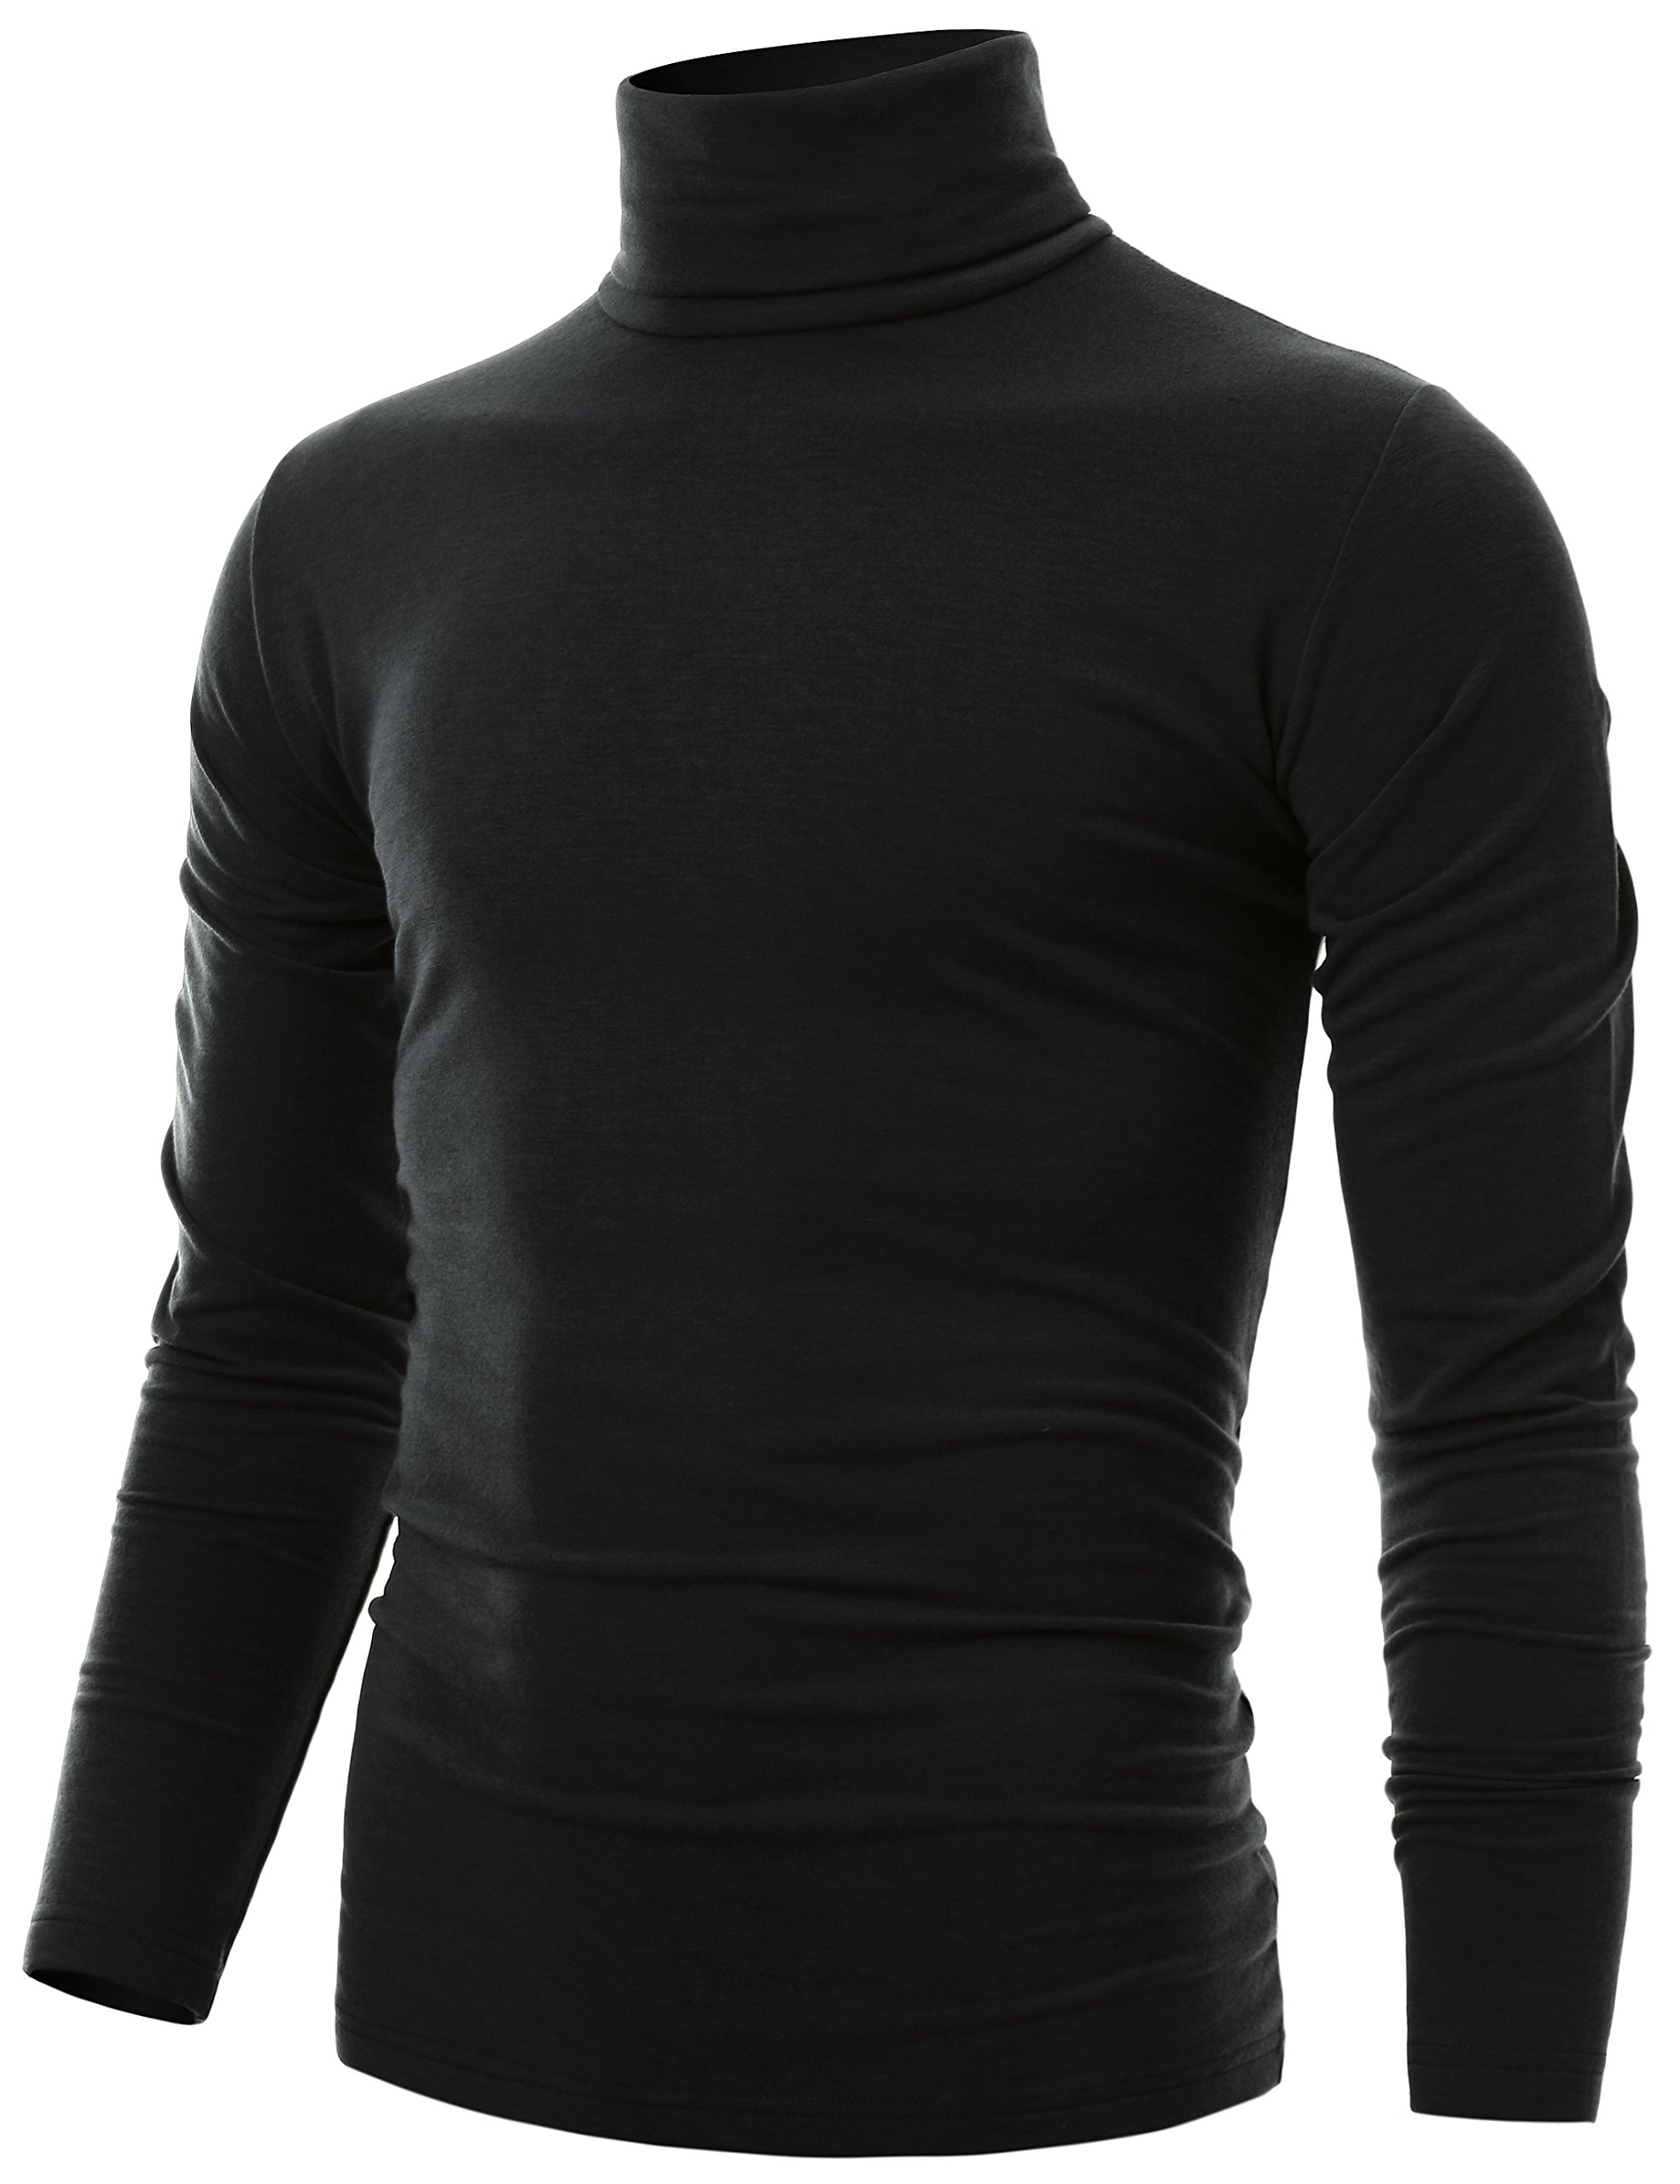 Ohoo Mens Slim Fit Soft Cotton Long Sleeve Pullover Lightweight Turtleneck/DCT001-BLACK-M by Ohoo